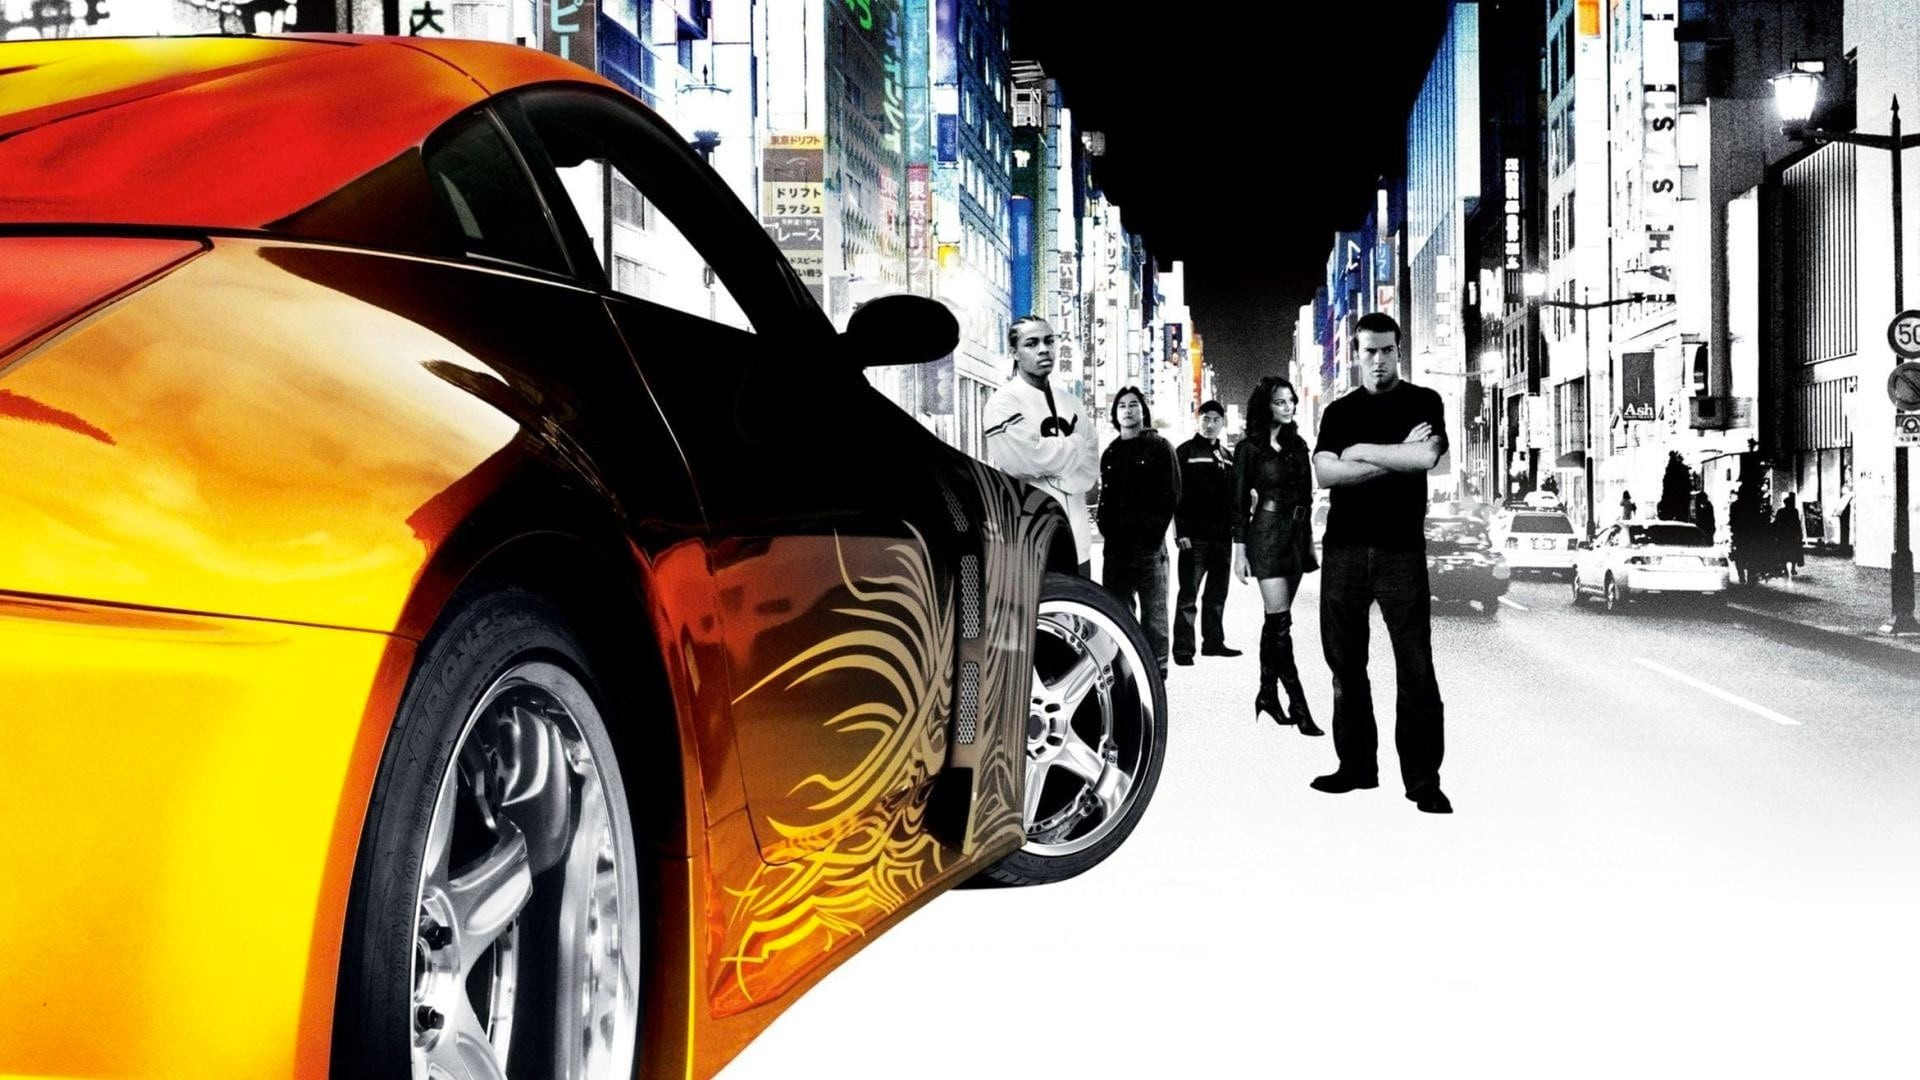 Ver ᴴᴰ A Todo Gas Tokyo Race The Fast And The Furious Tokyo Drift Repelis Pelicula Completa Español Y Latino By Ss Babel Iraqn Mar 2021 Medium